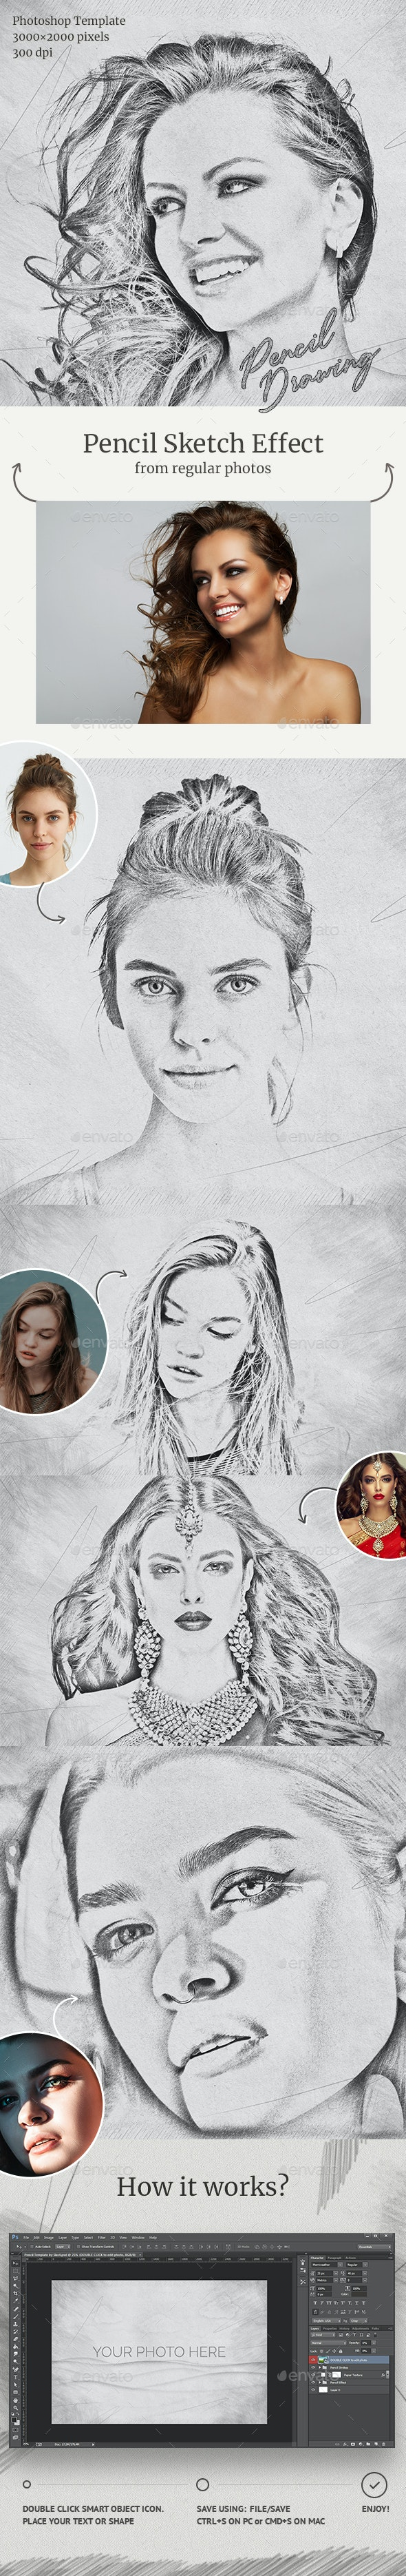 Pencil Drawing Photoshop Template - Artistic Photo Templates